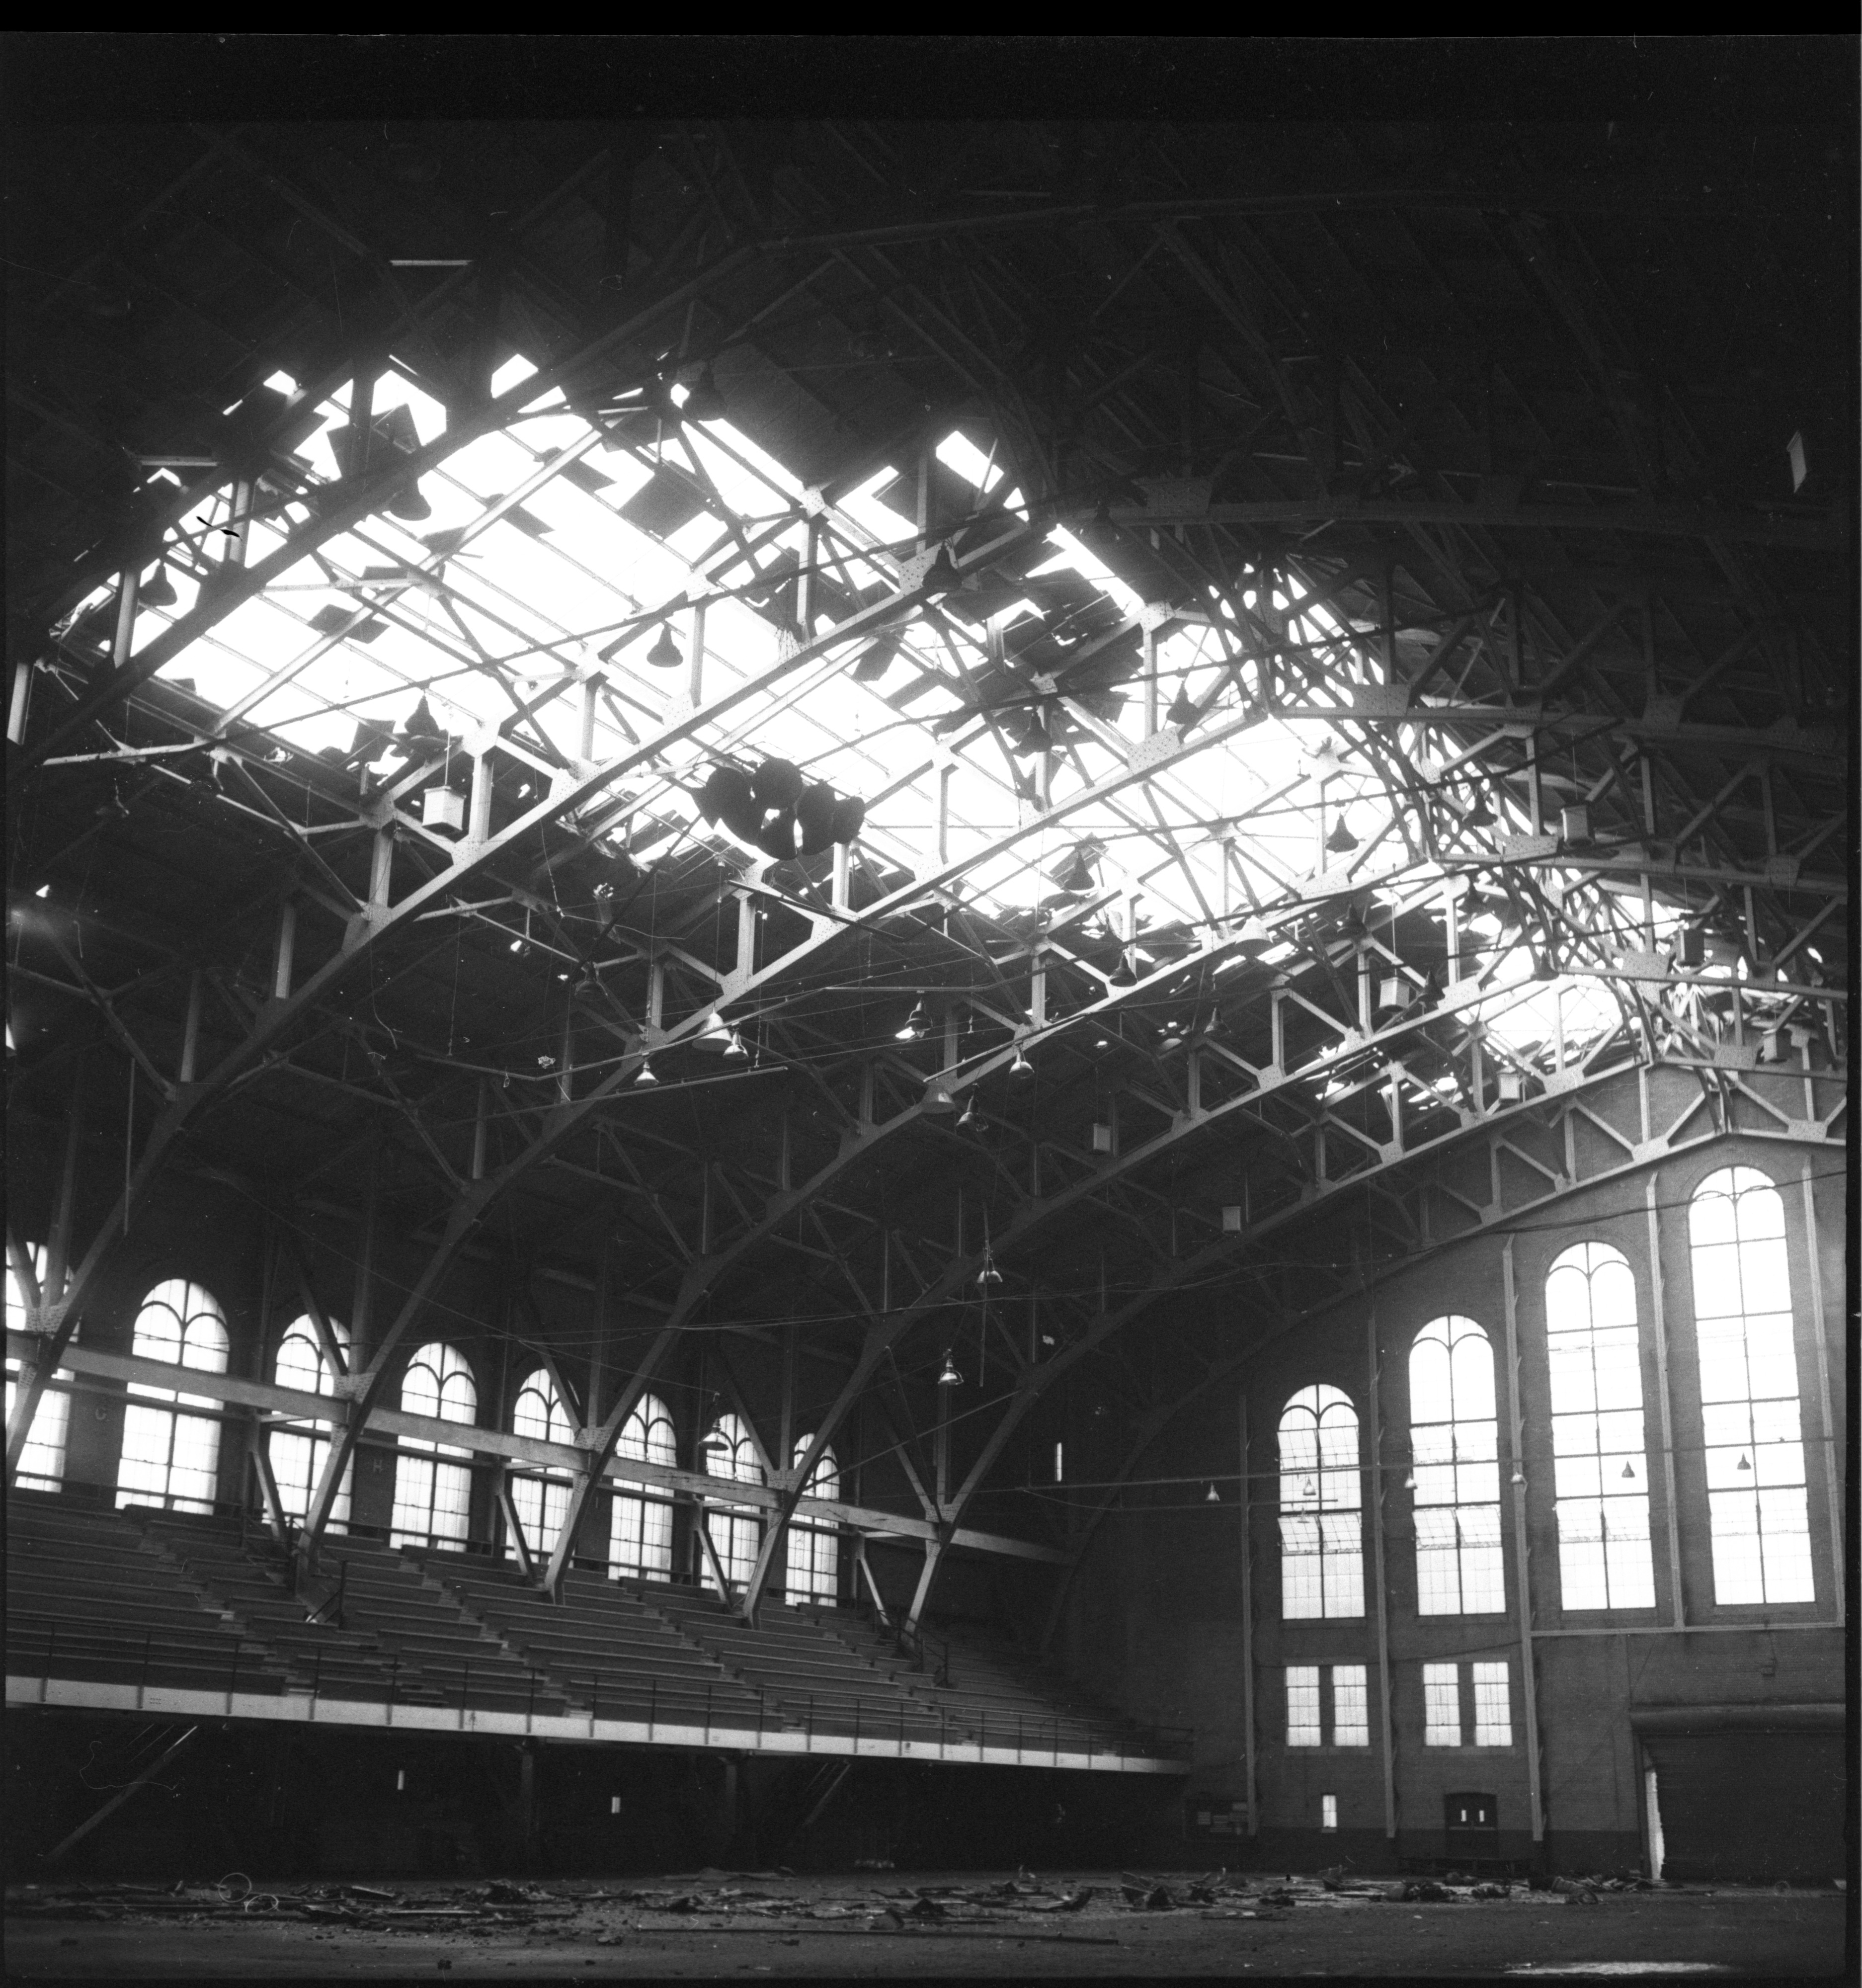 Yost Field House Roof Ripped Off By Windstorm, May 1959 image